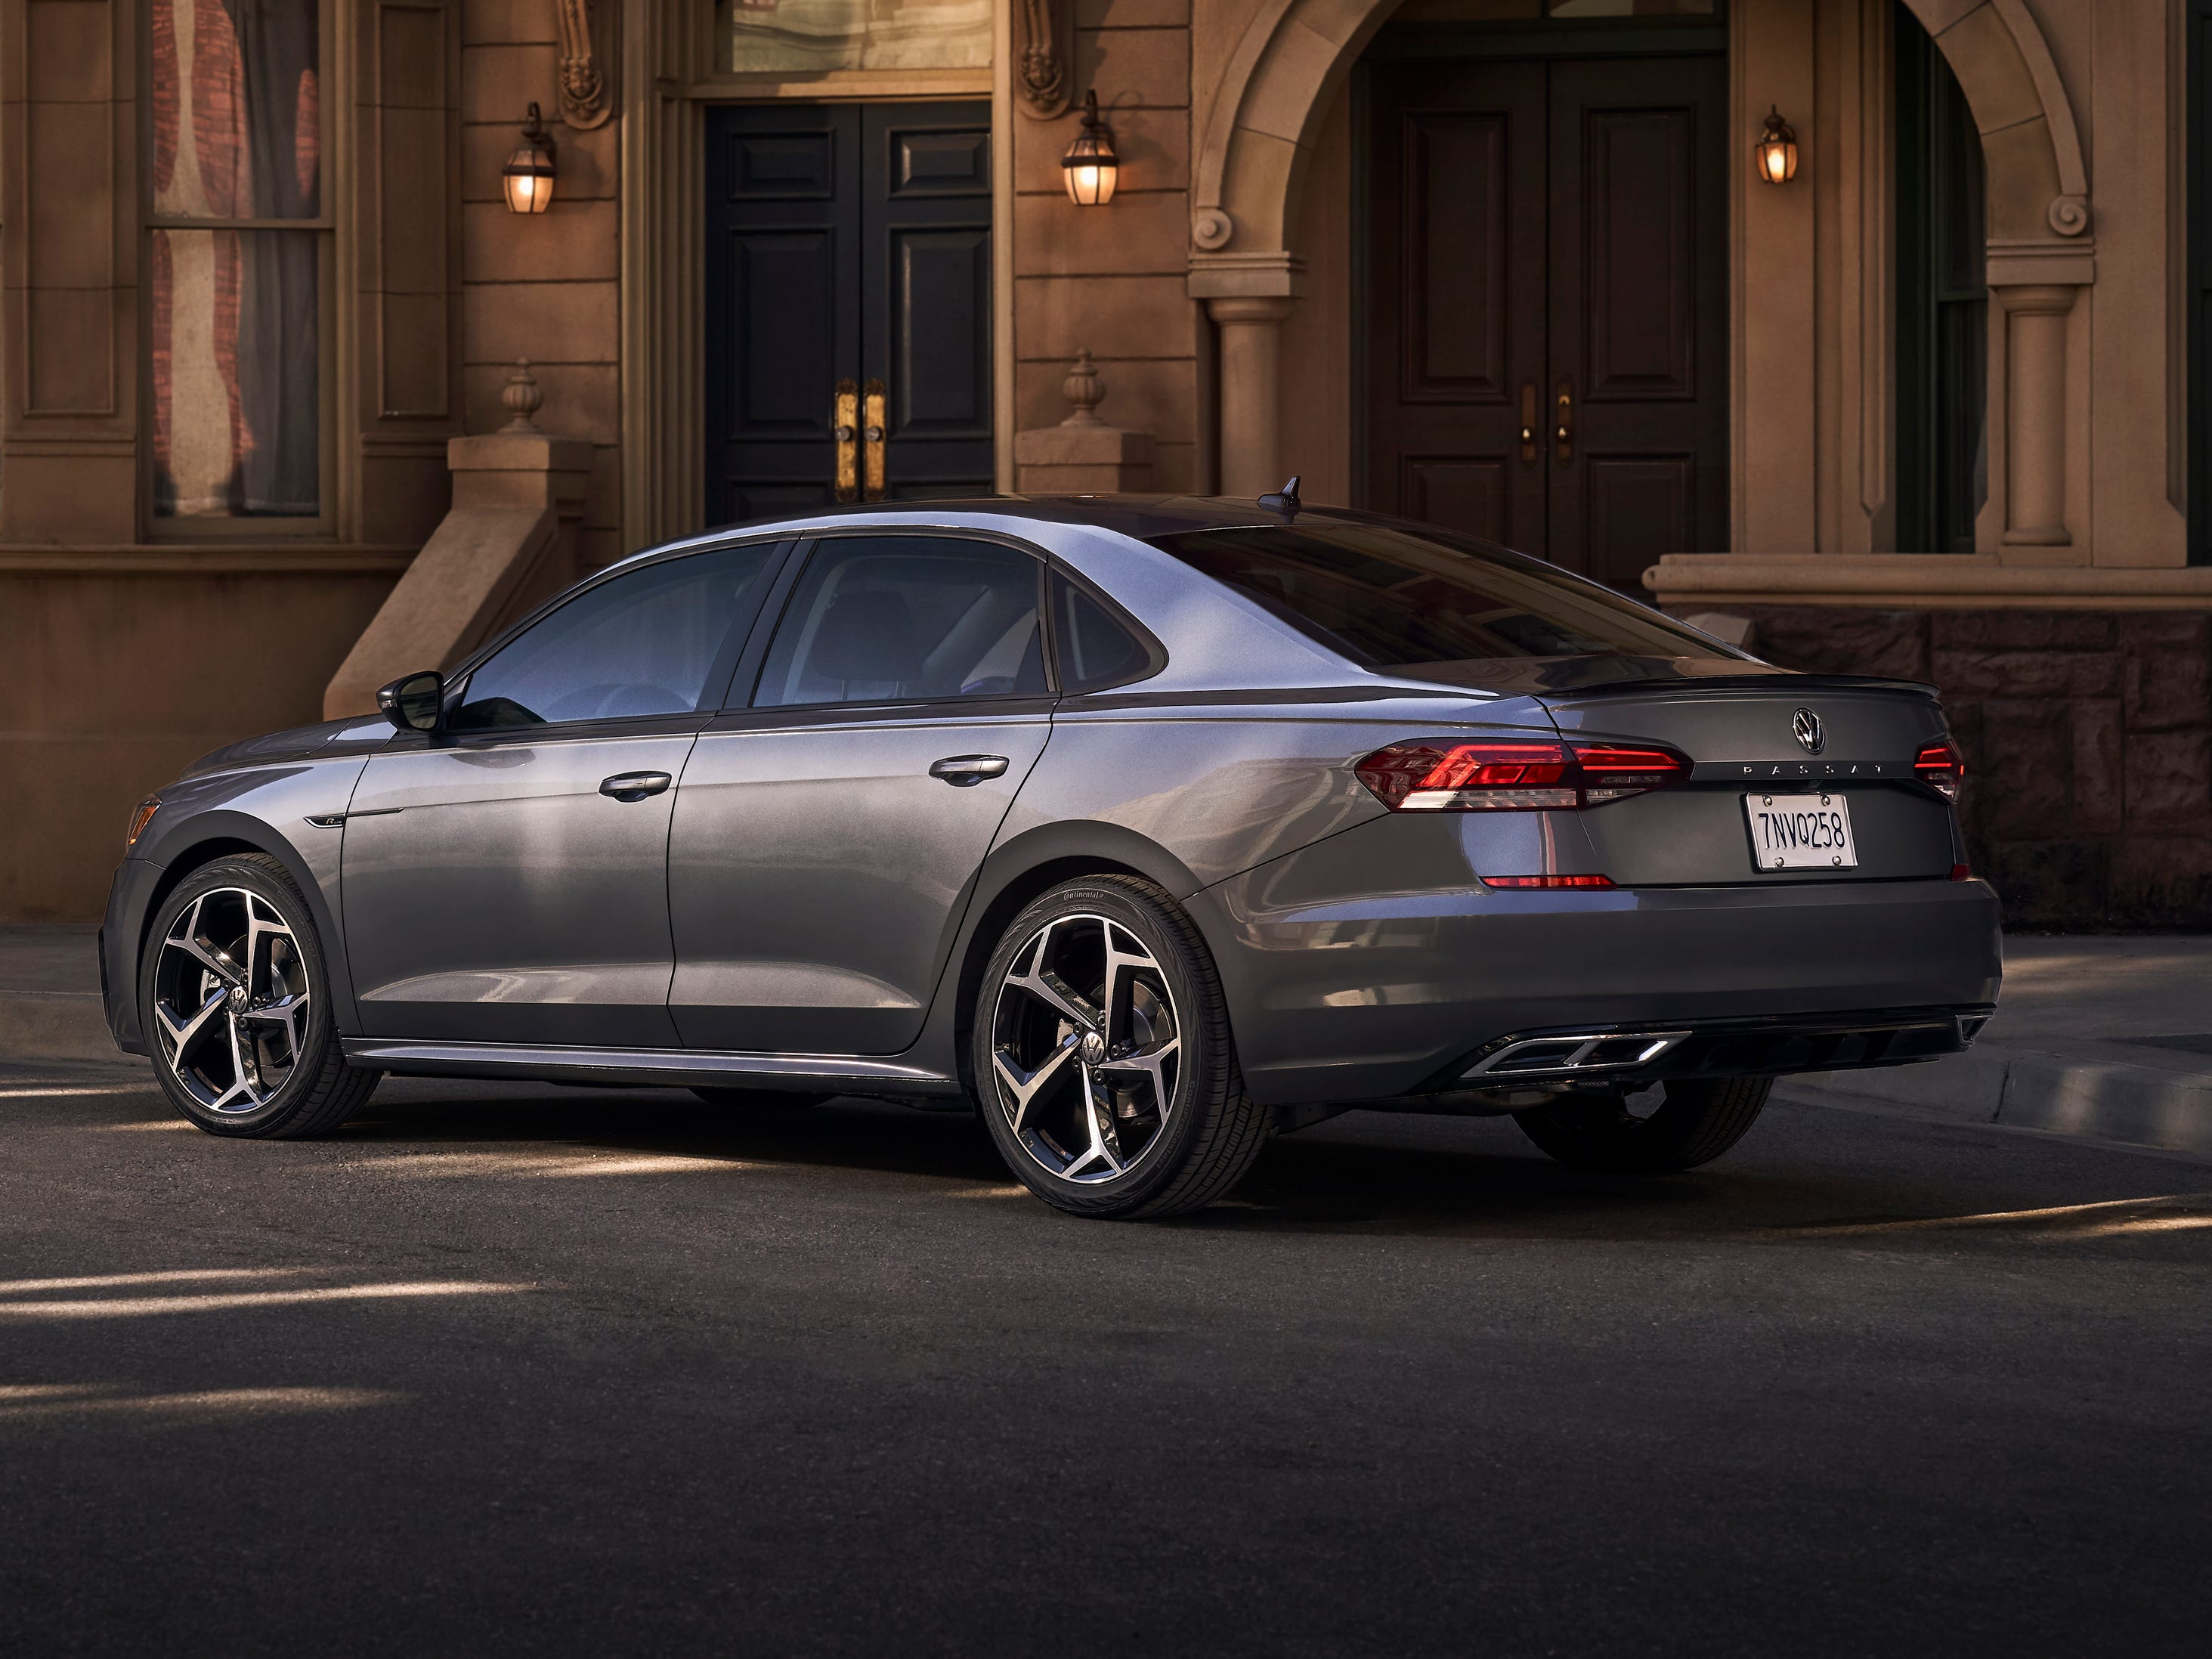 Every Passat comes with standard Volkswagen Car-Net® AppConnect technology, which integrates compatible smartphones with the three major platforms — Apple CarPlay™, Android Auto™ and MirrorLink® — making select apps accessible from the infotainment screen.